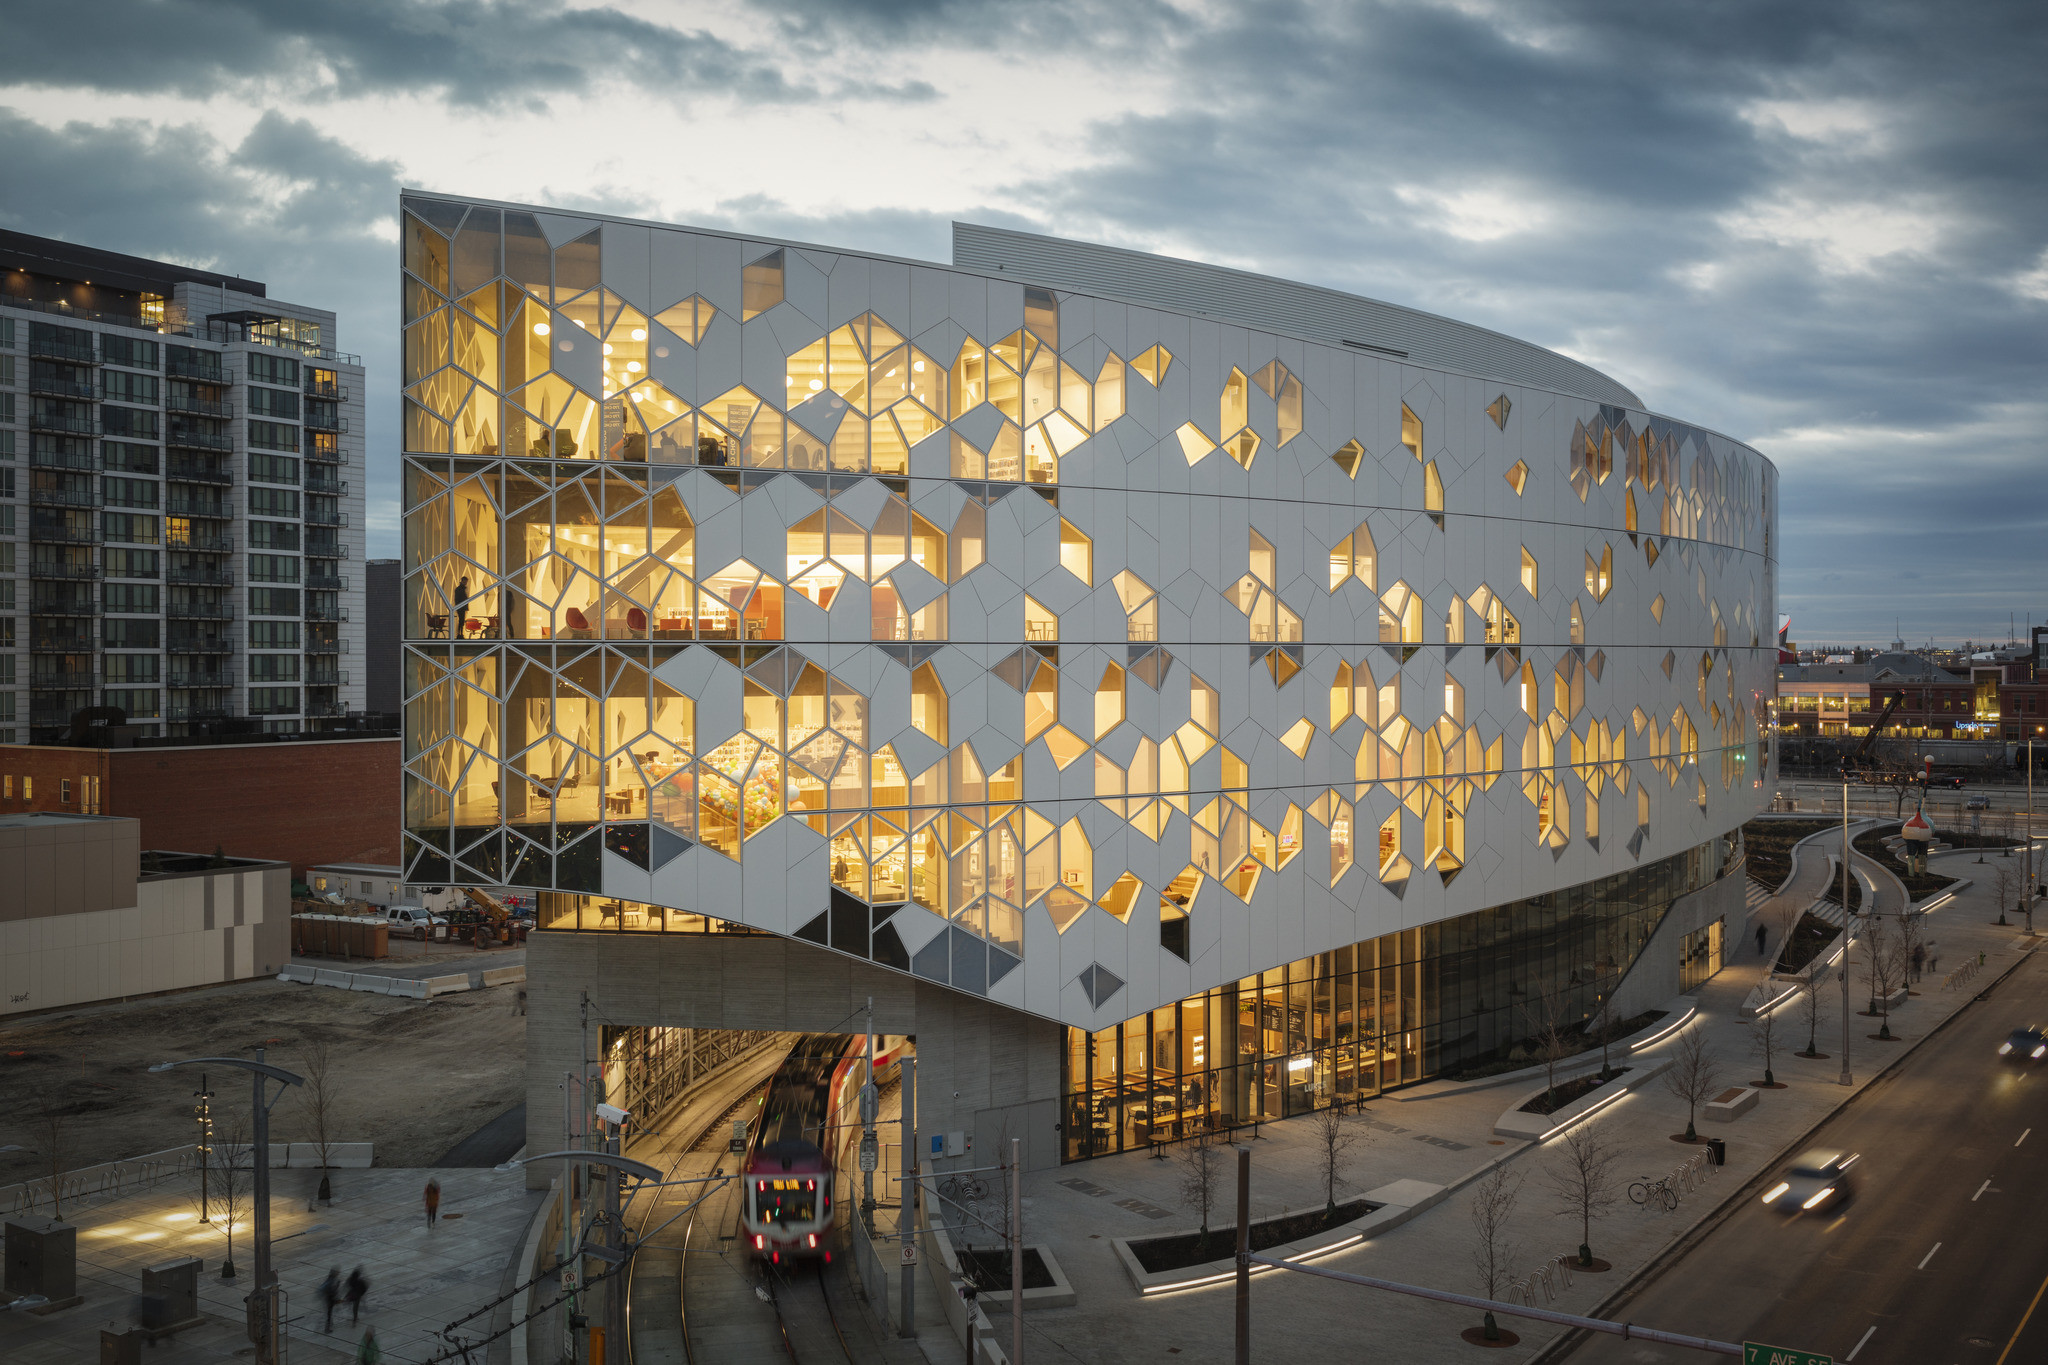 World's greatest places - Calgary Library by Snohetta